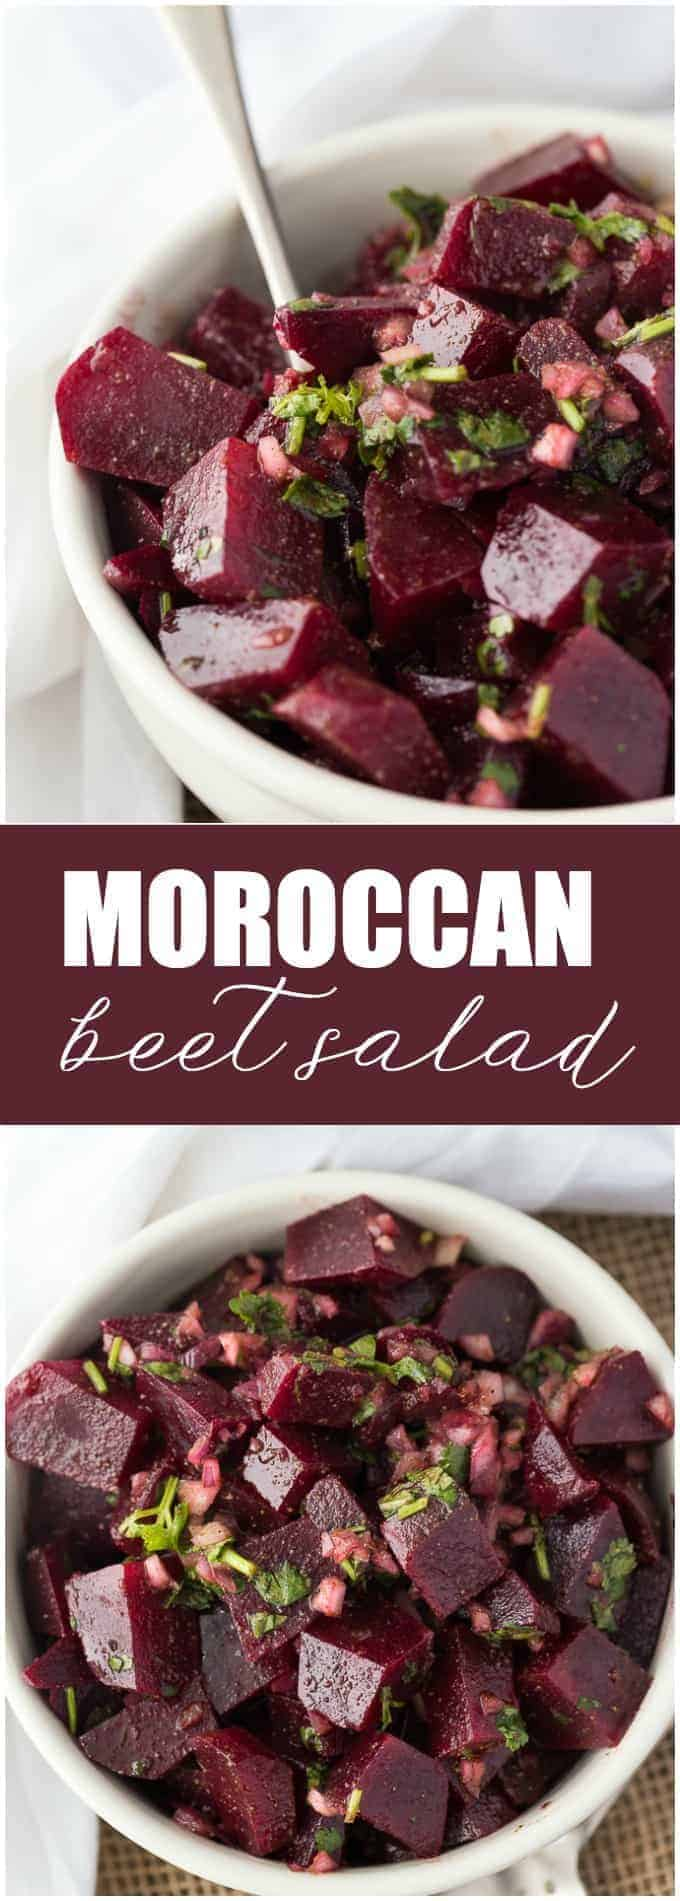 Moroccan Beet Salad - Naturally sweet and colorful, too! A light and refreshing Middle Eastern salad side dish packed with parsley, cilantro, and cumin.